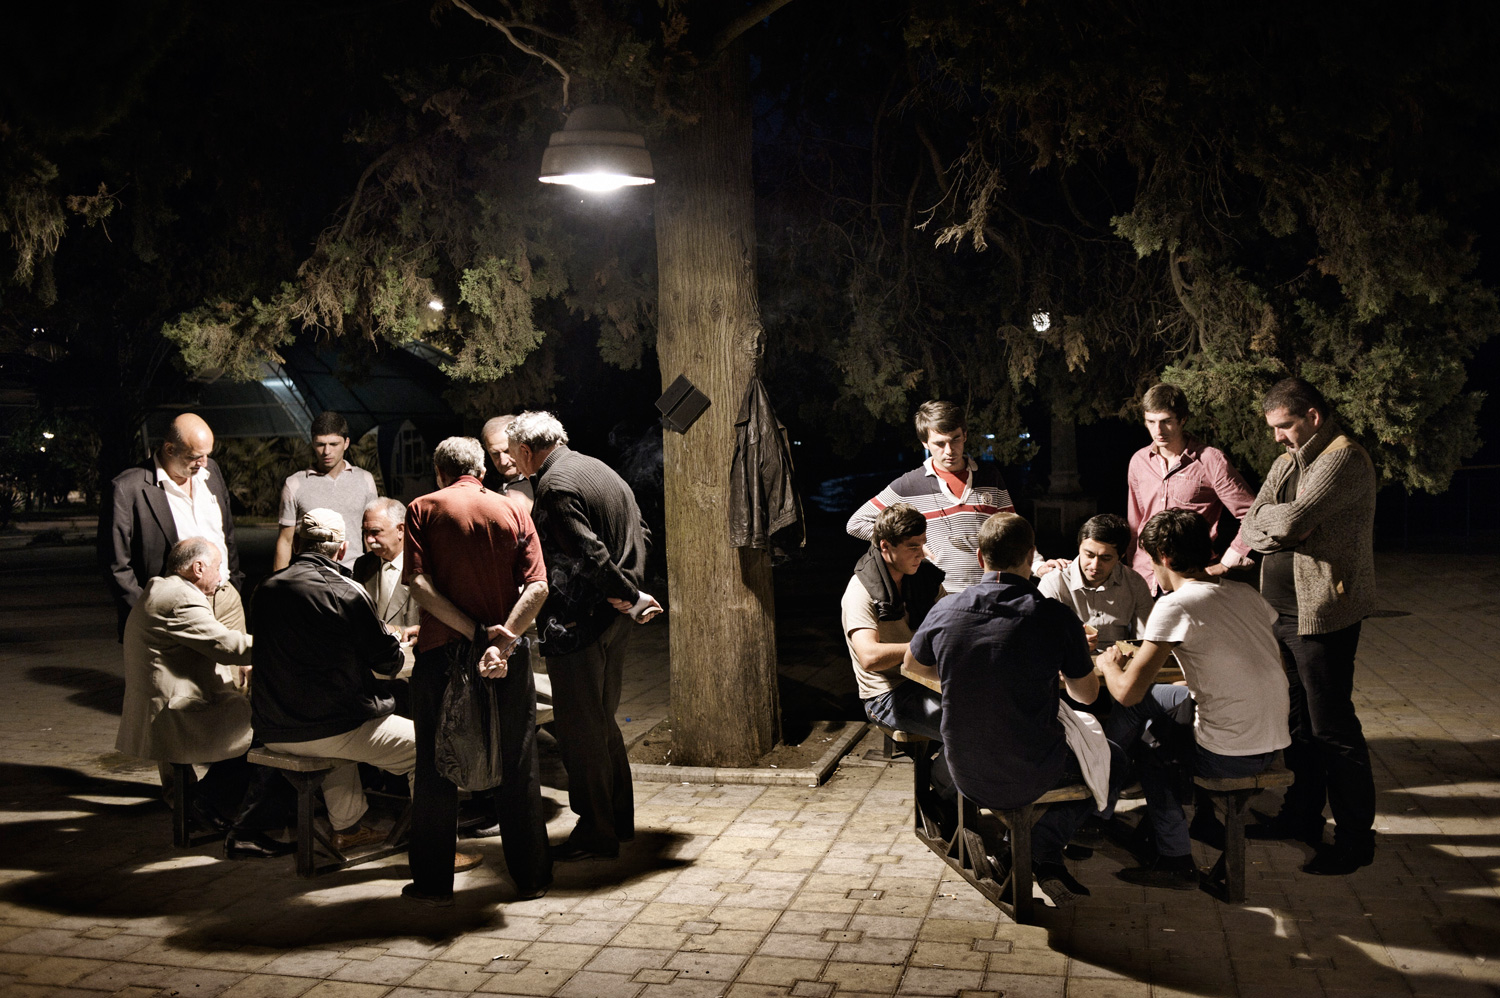 Domino competitions are a serious business on the promenade in central Sukhumi, the capital of Abkhazia, a former Soviet vacation spot on the Black Sea.